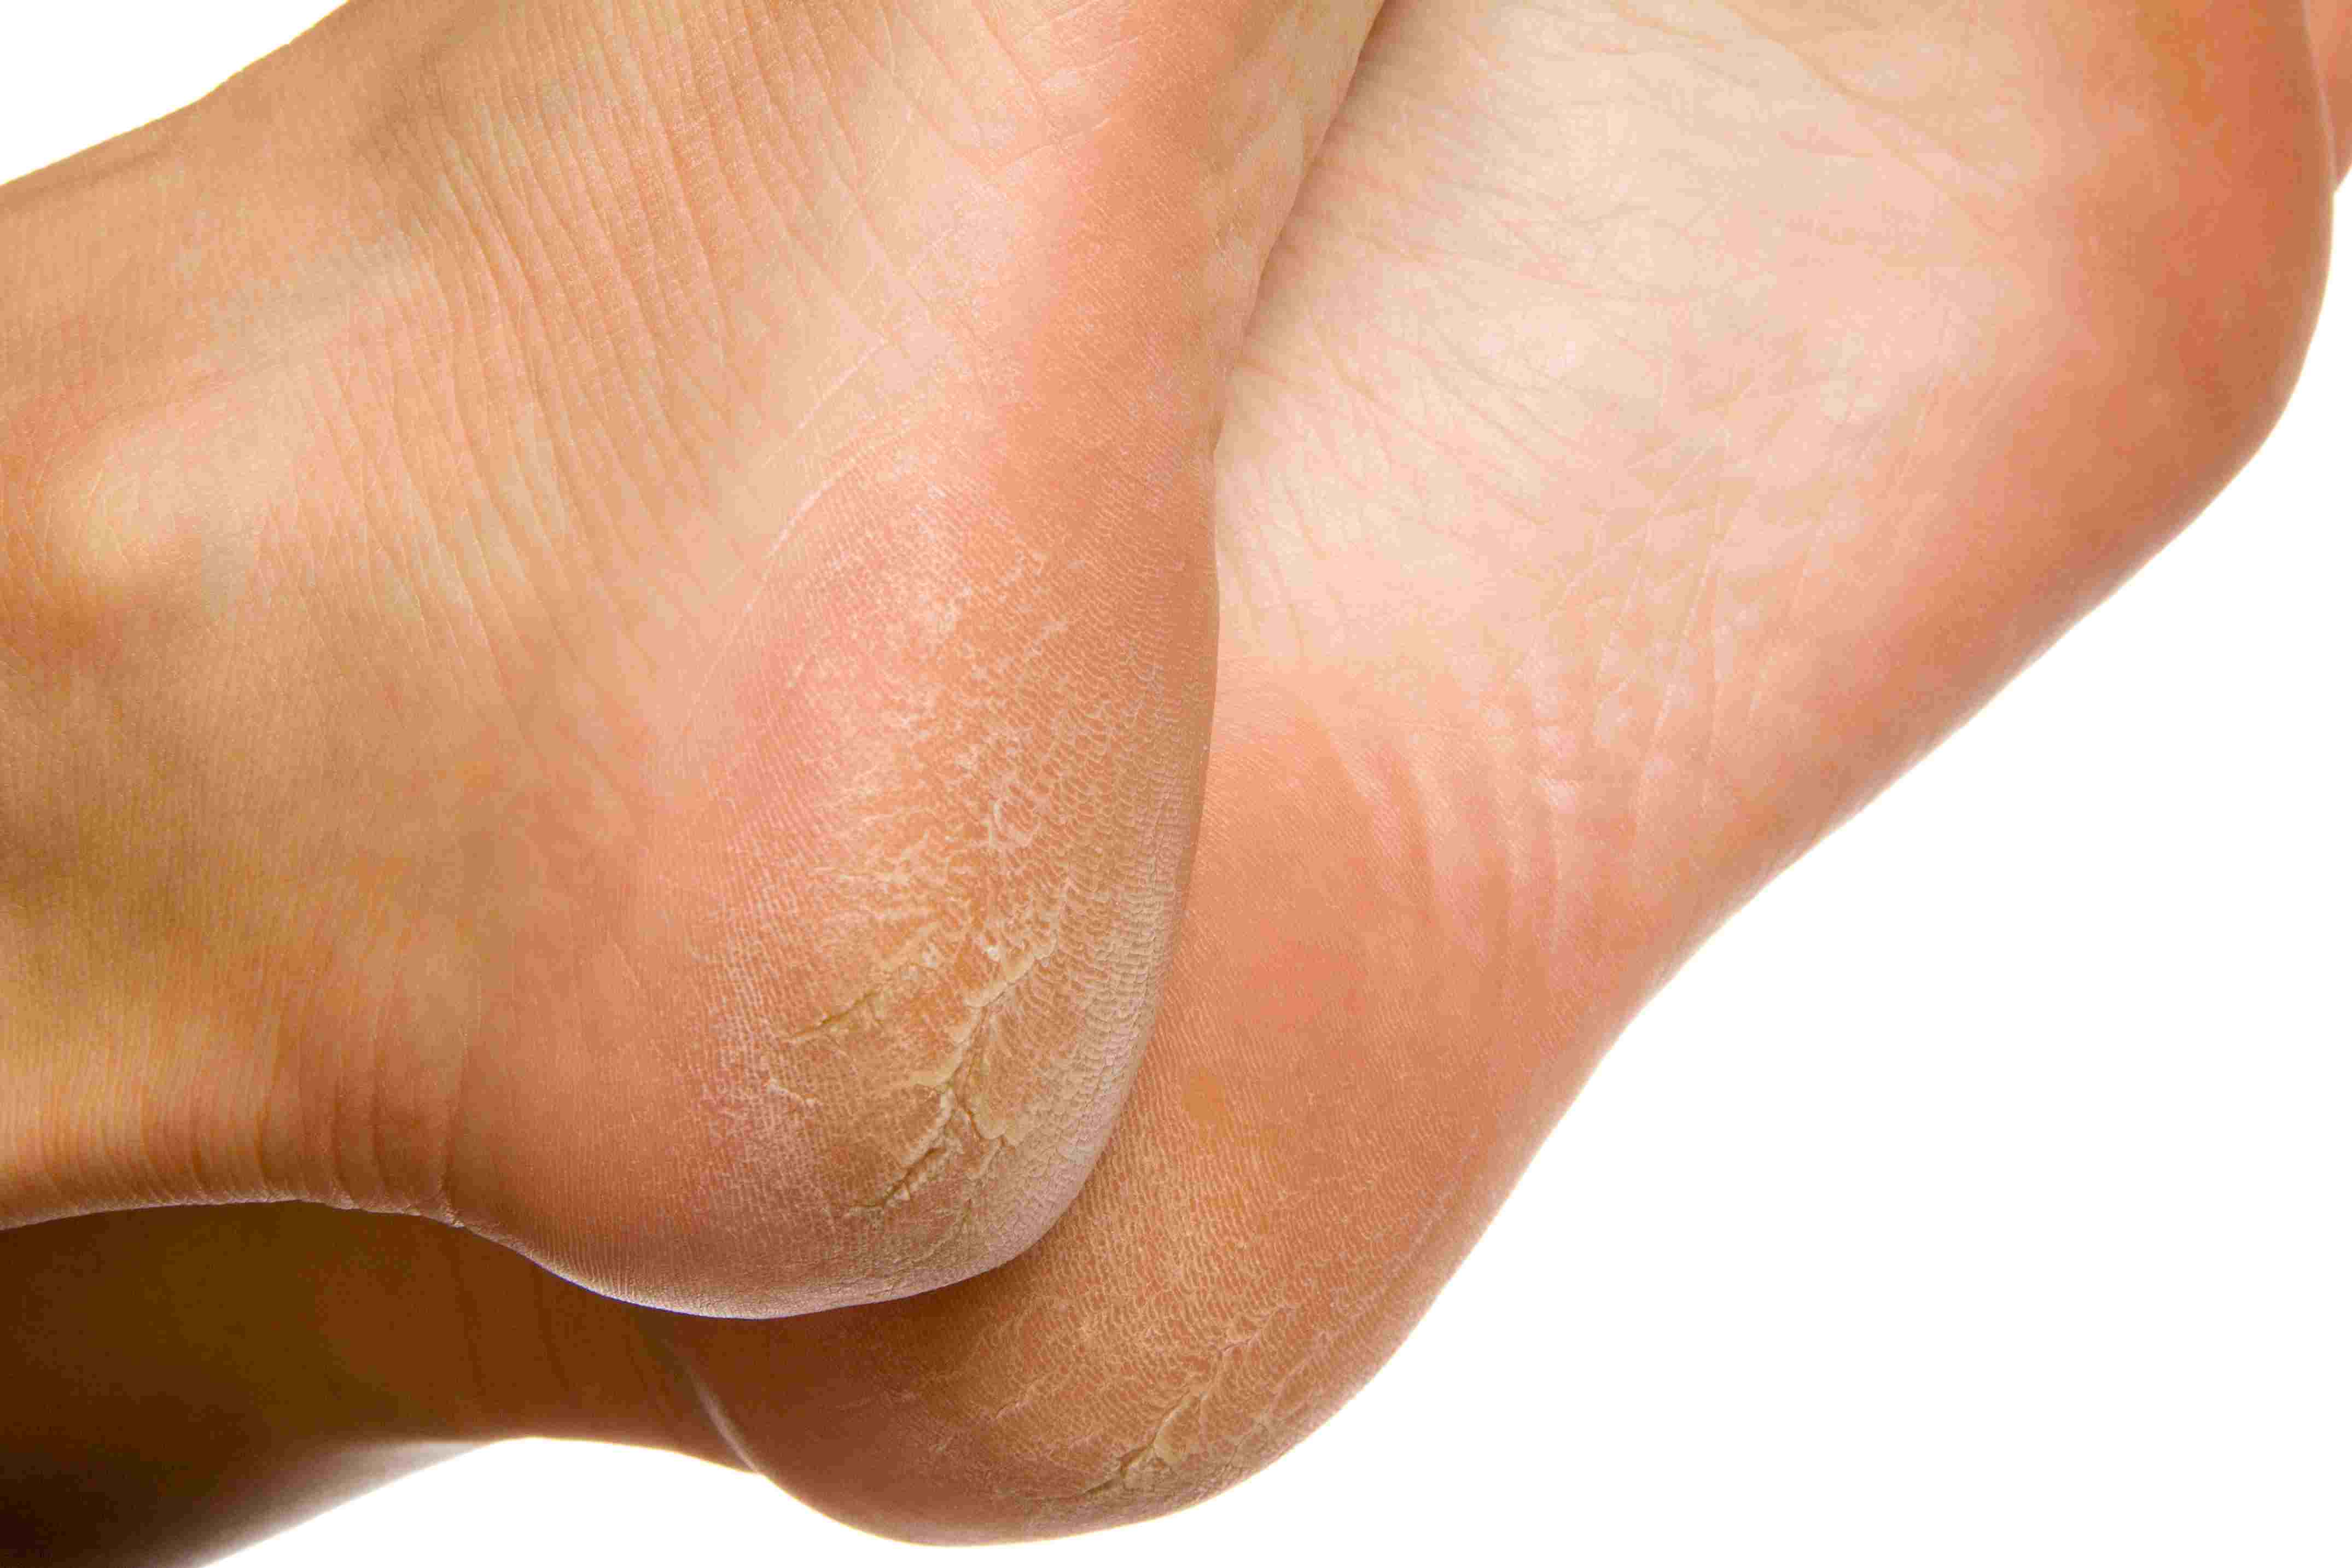 Plantar wart on foot images Istoricul fișierului - Wart on your foot